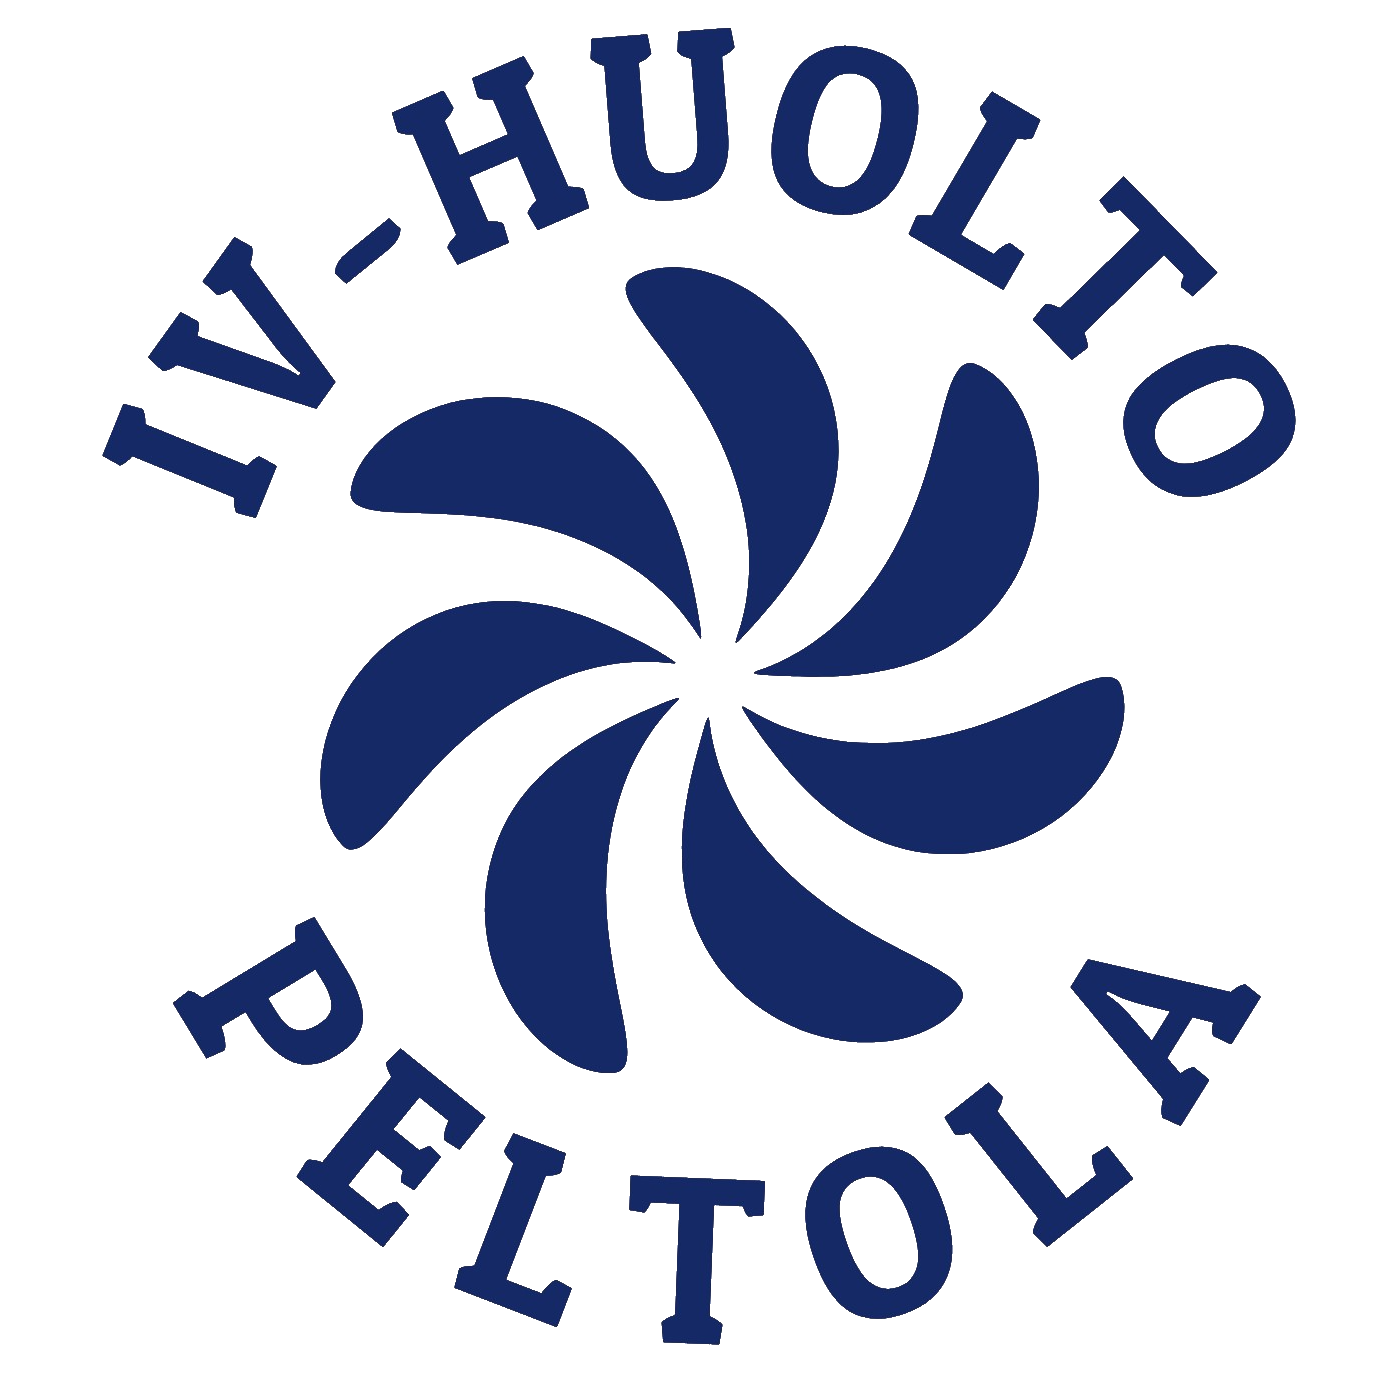 ivhuoltopeltola